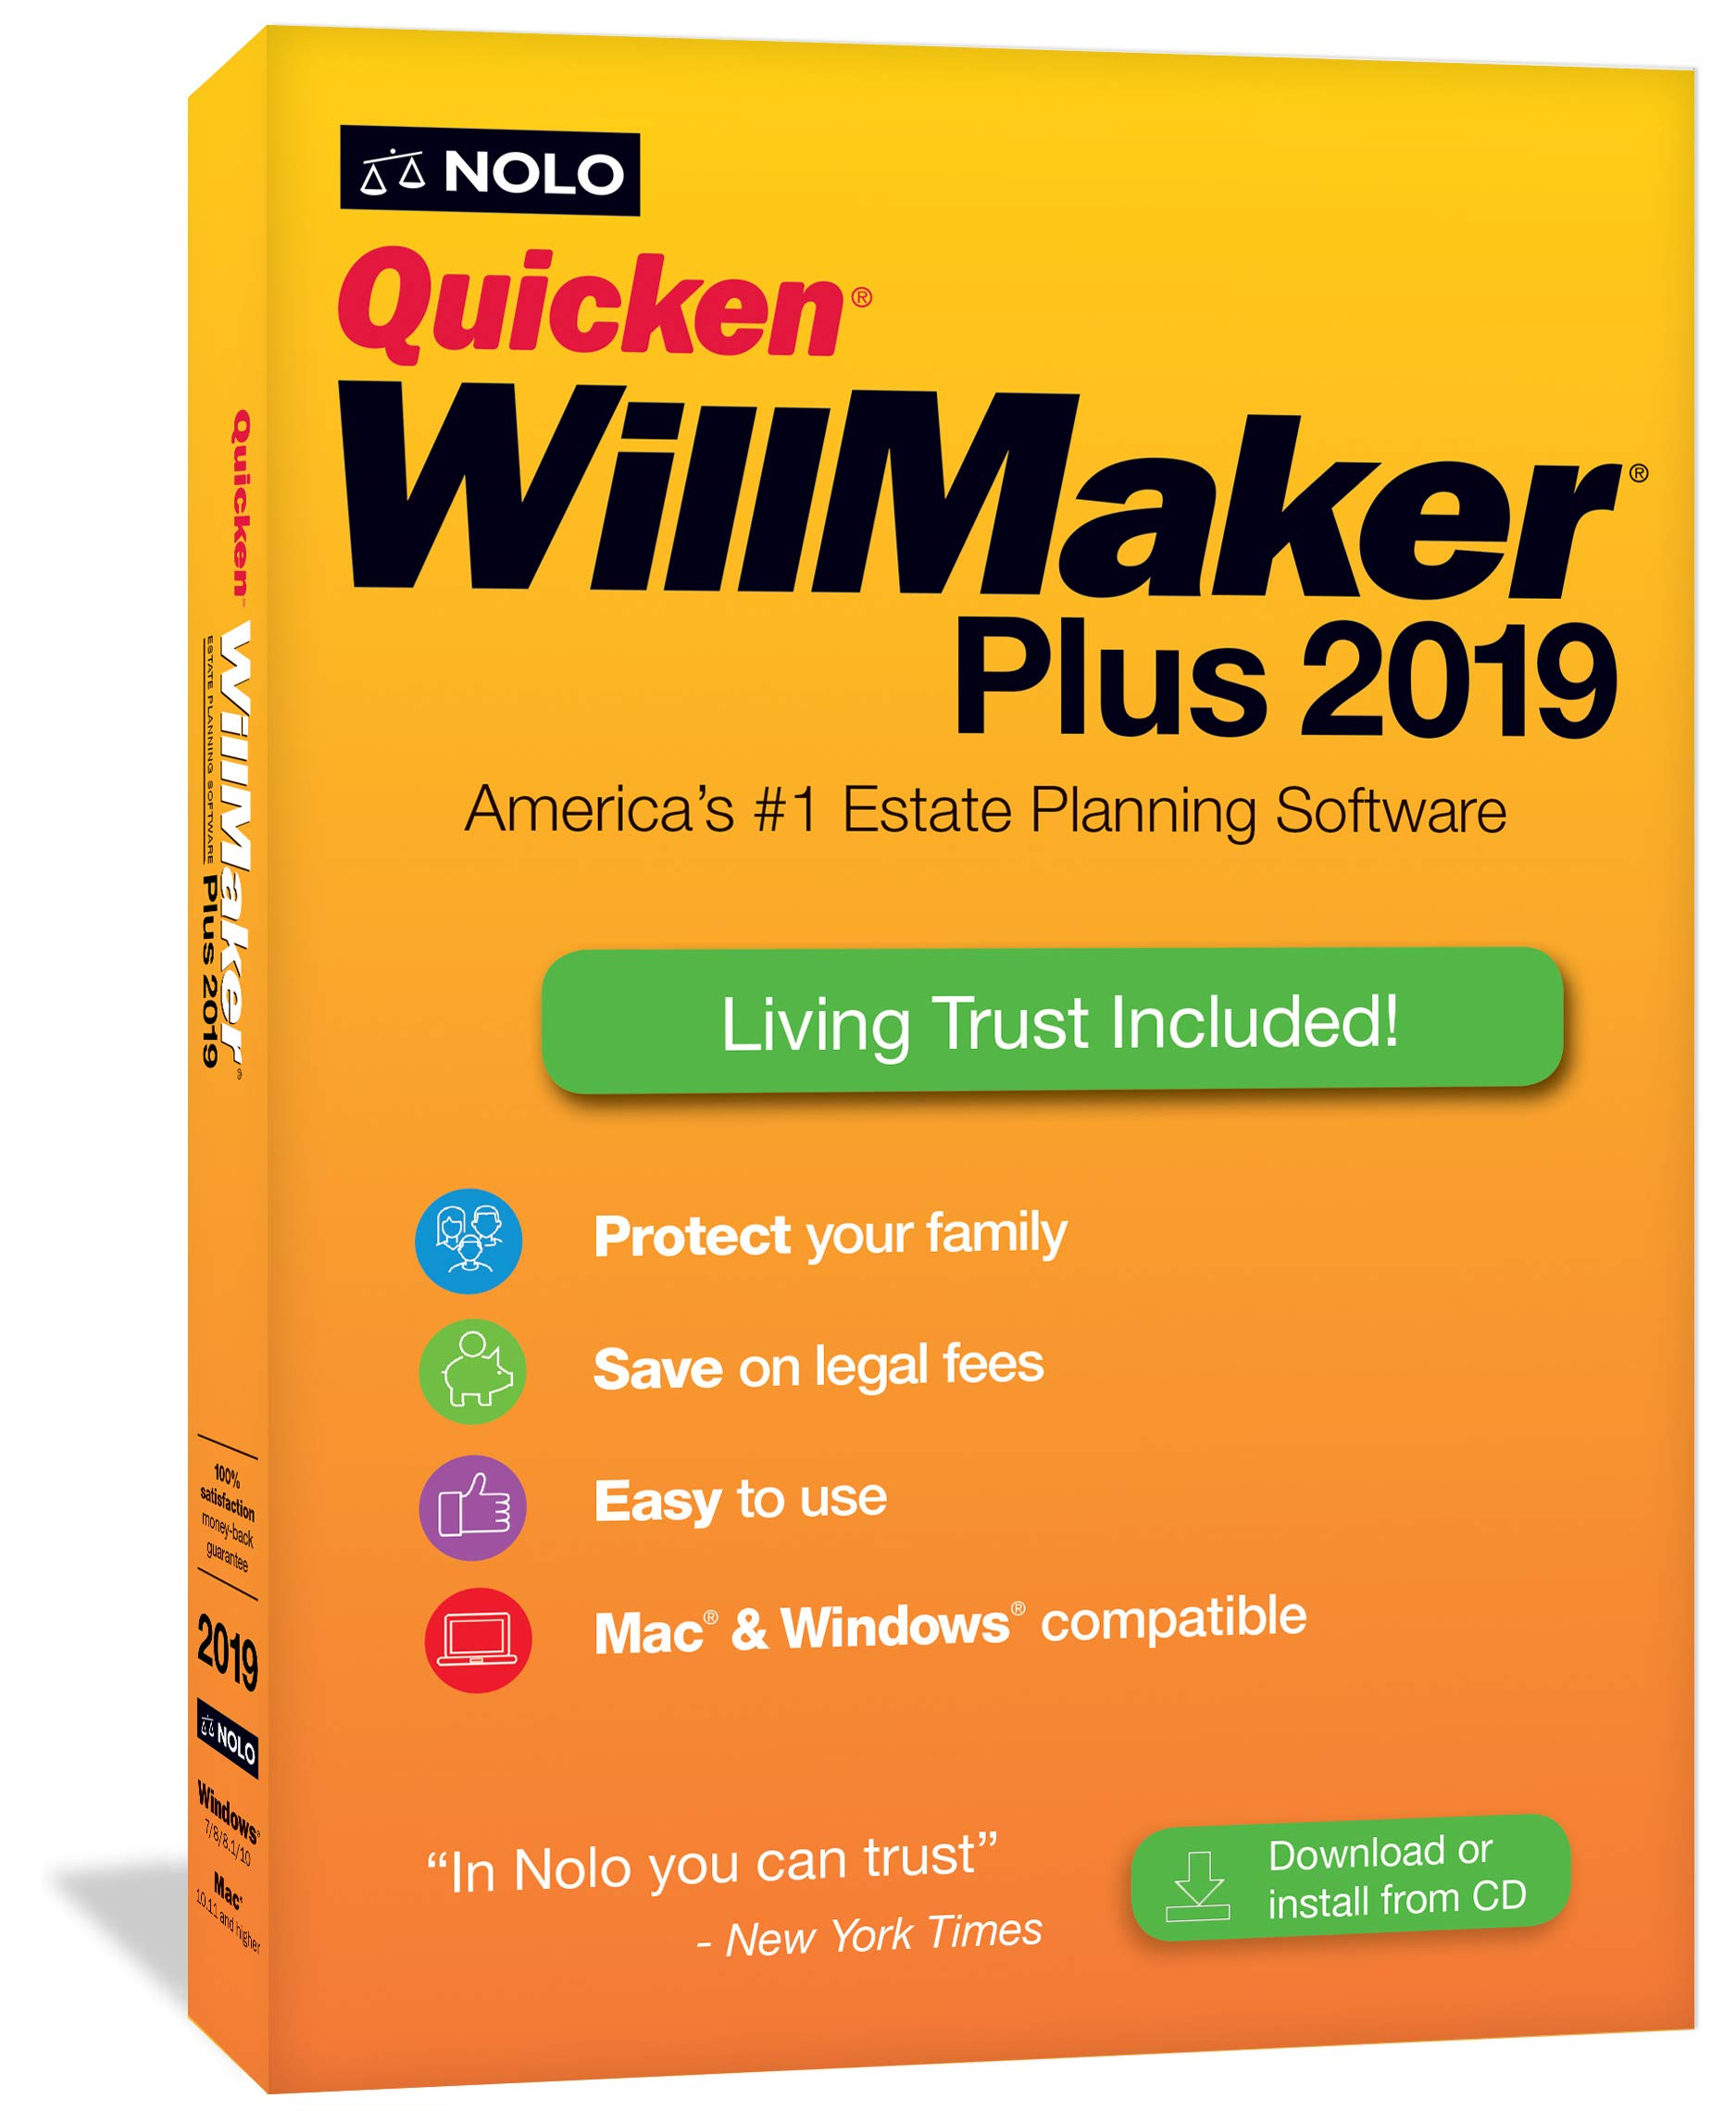 Quicken WillMaker Plus 2019 and Living Trust software by NOLO